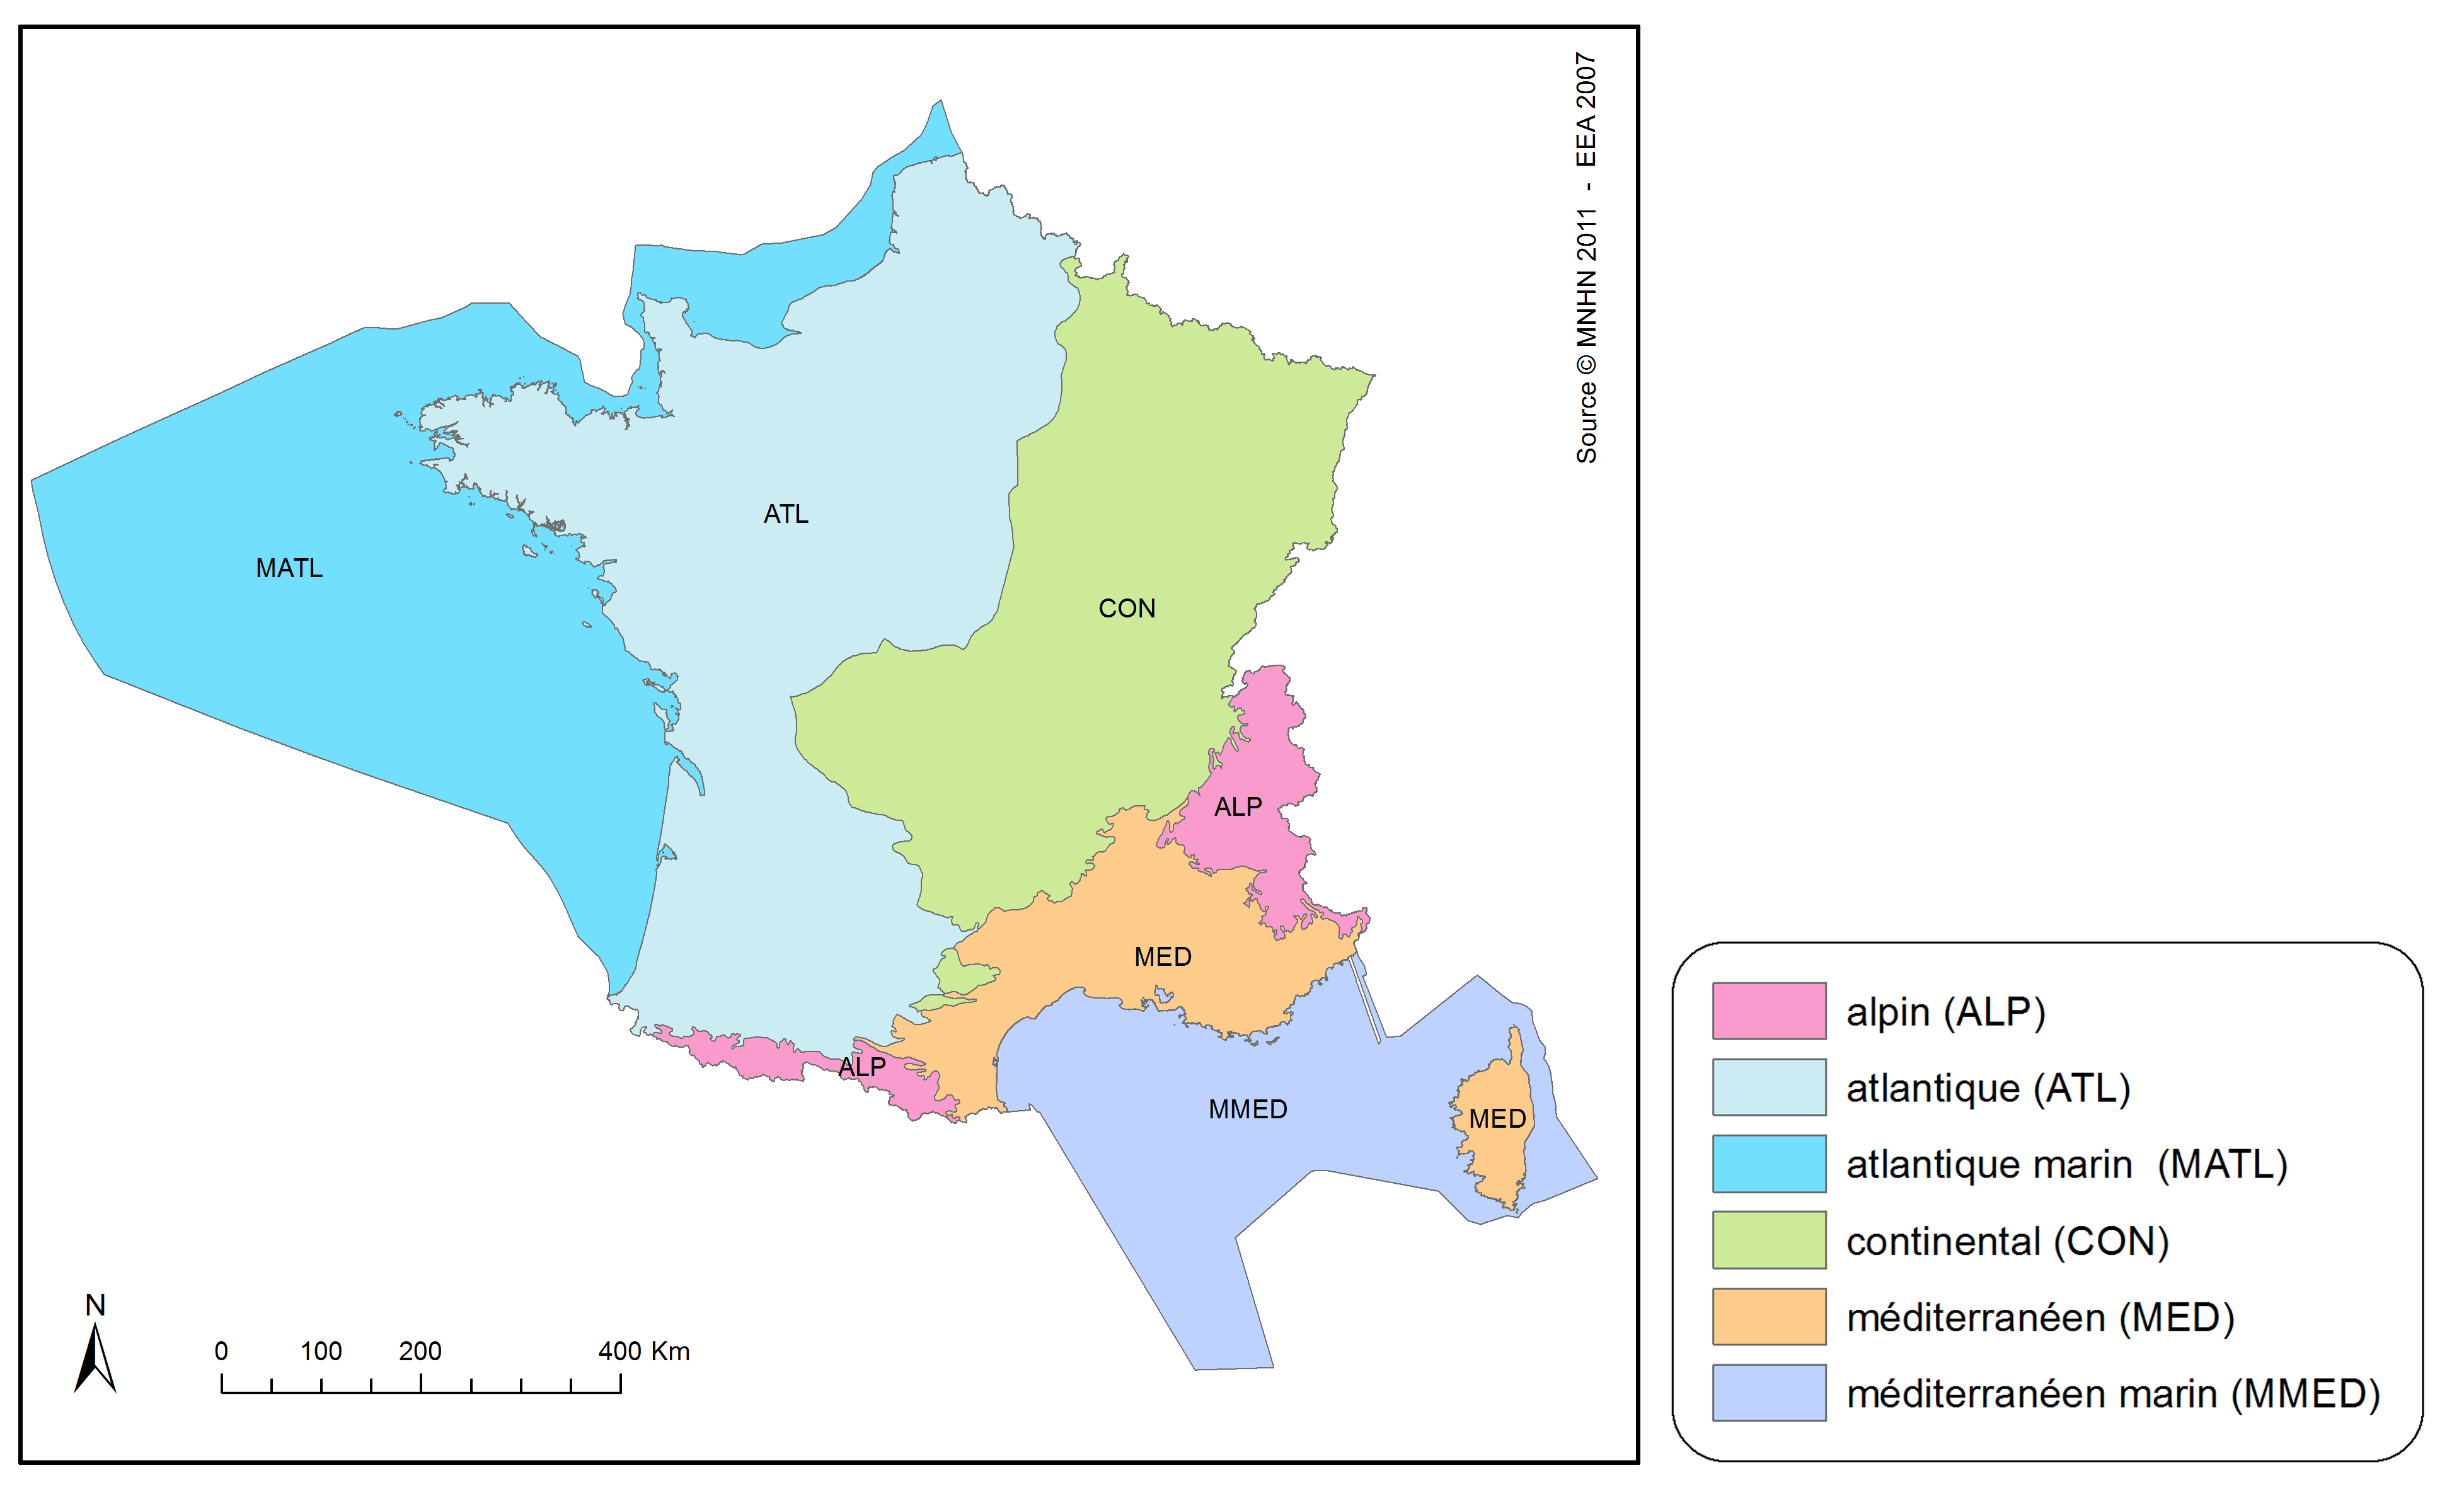 <stong>Figure 2: Biogeographical regions for assessments of conservation status in France </strong>